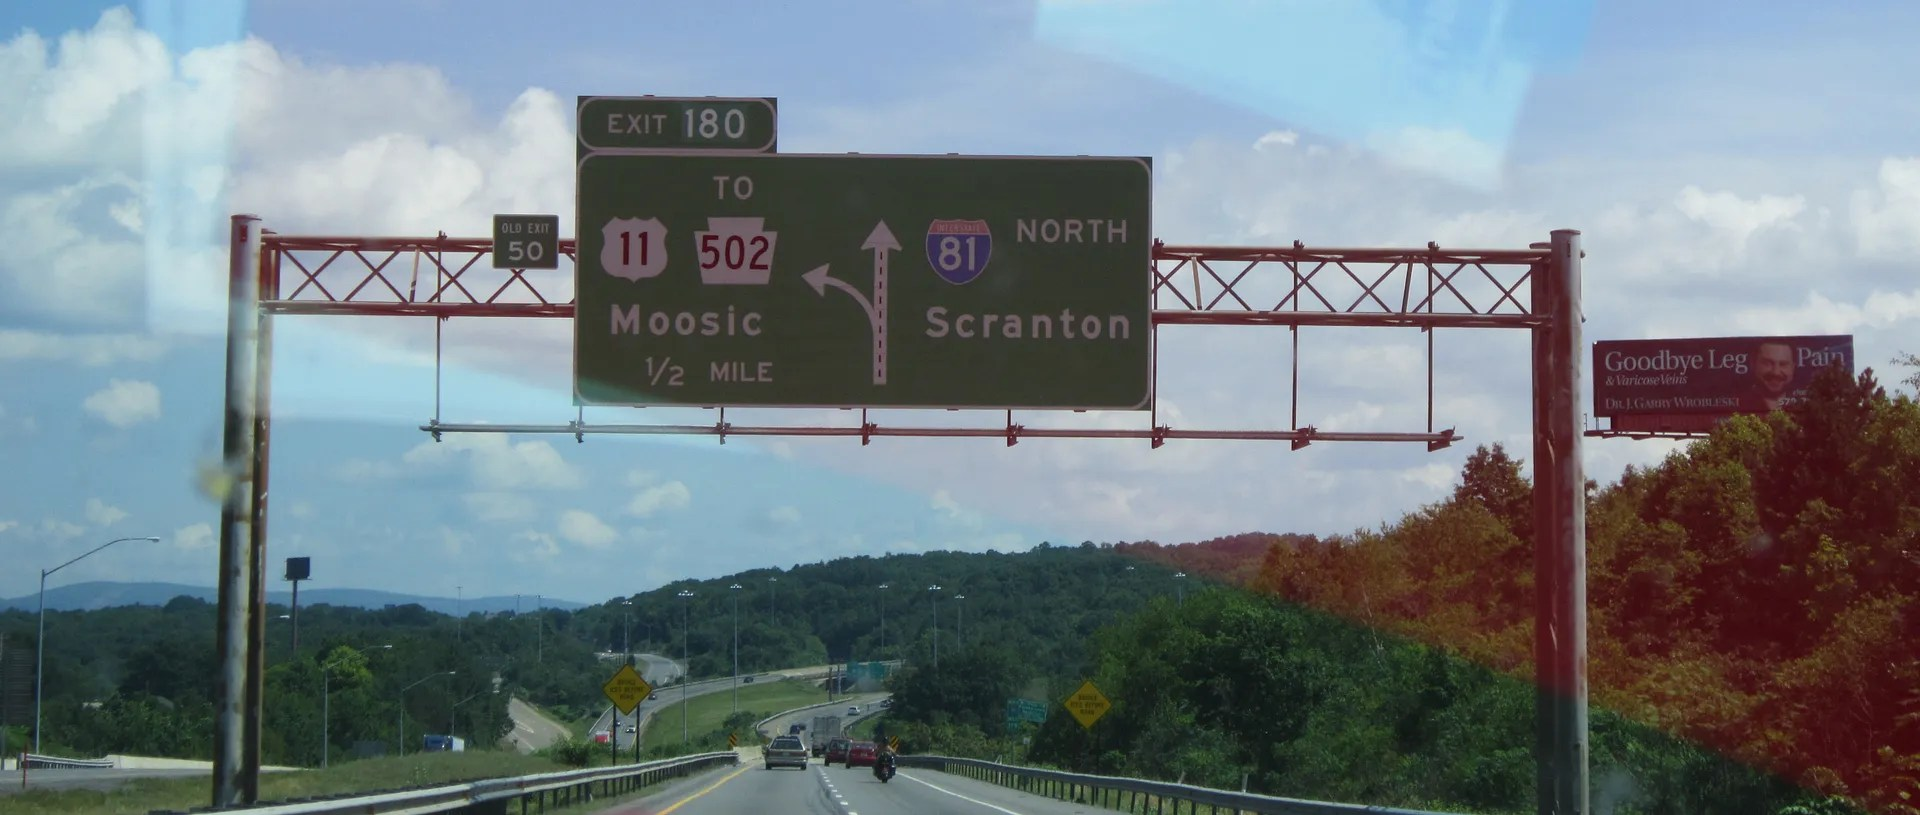 Scranton interstate sign, Pennsylvania